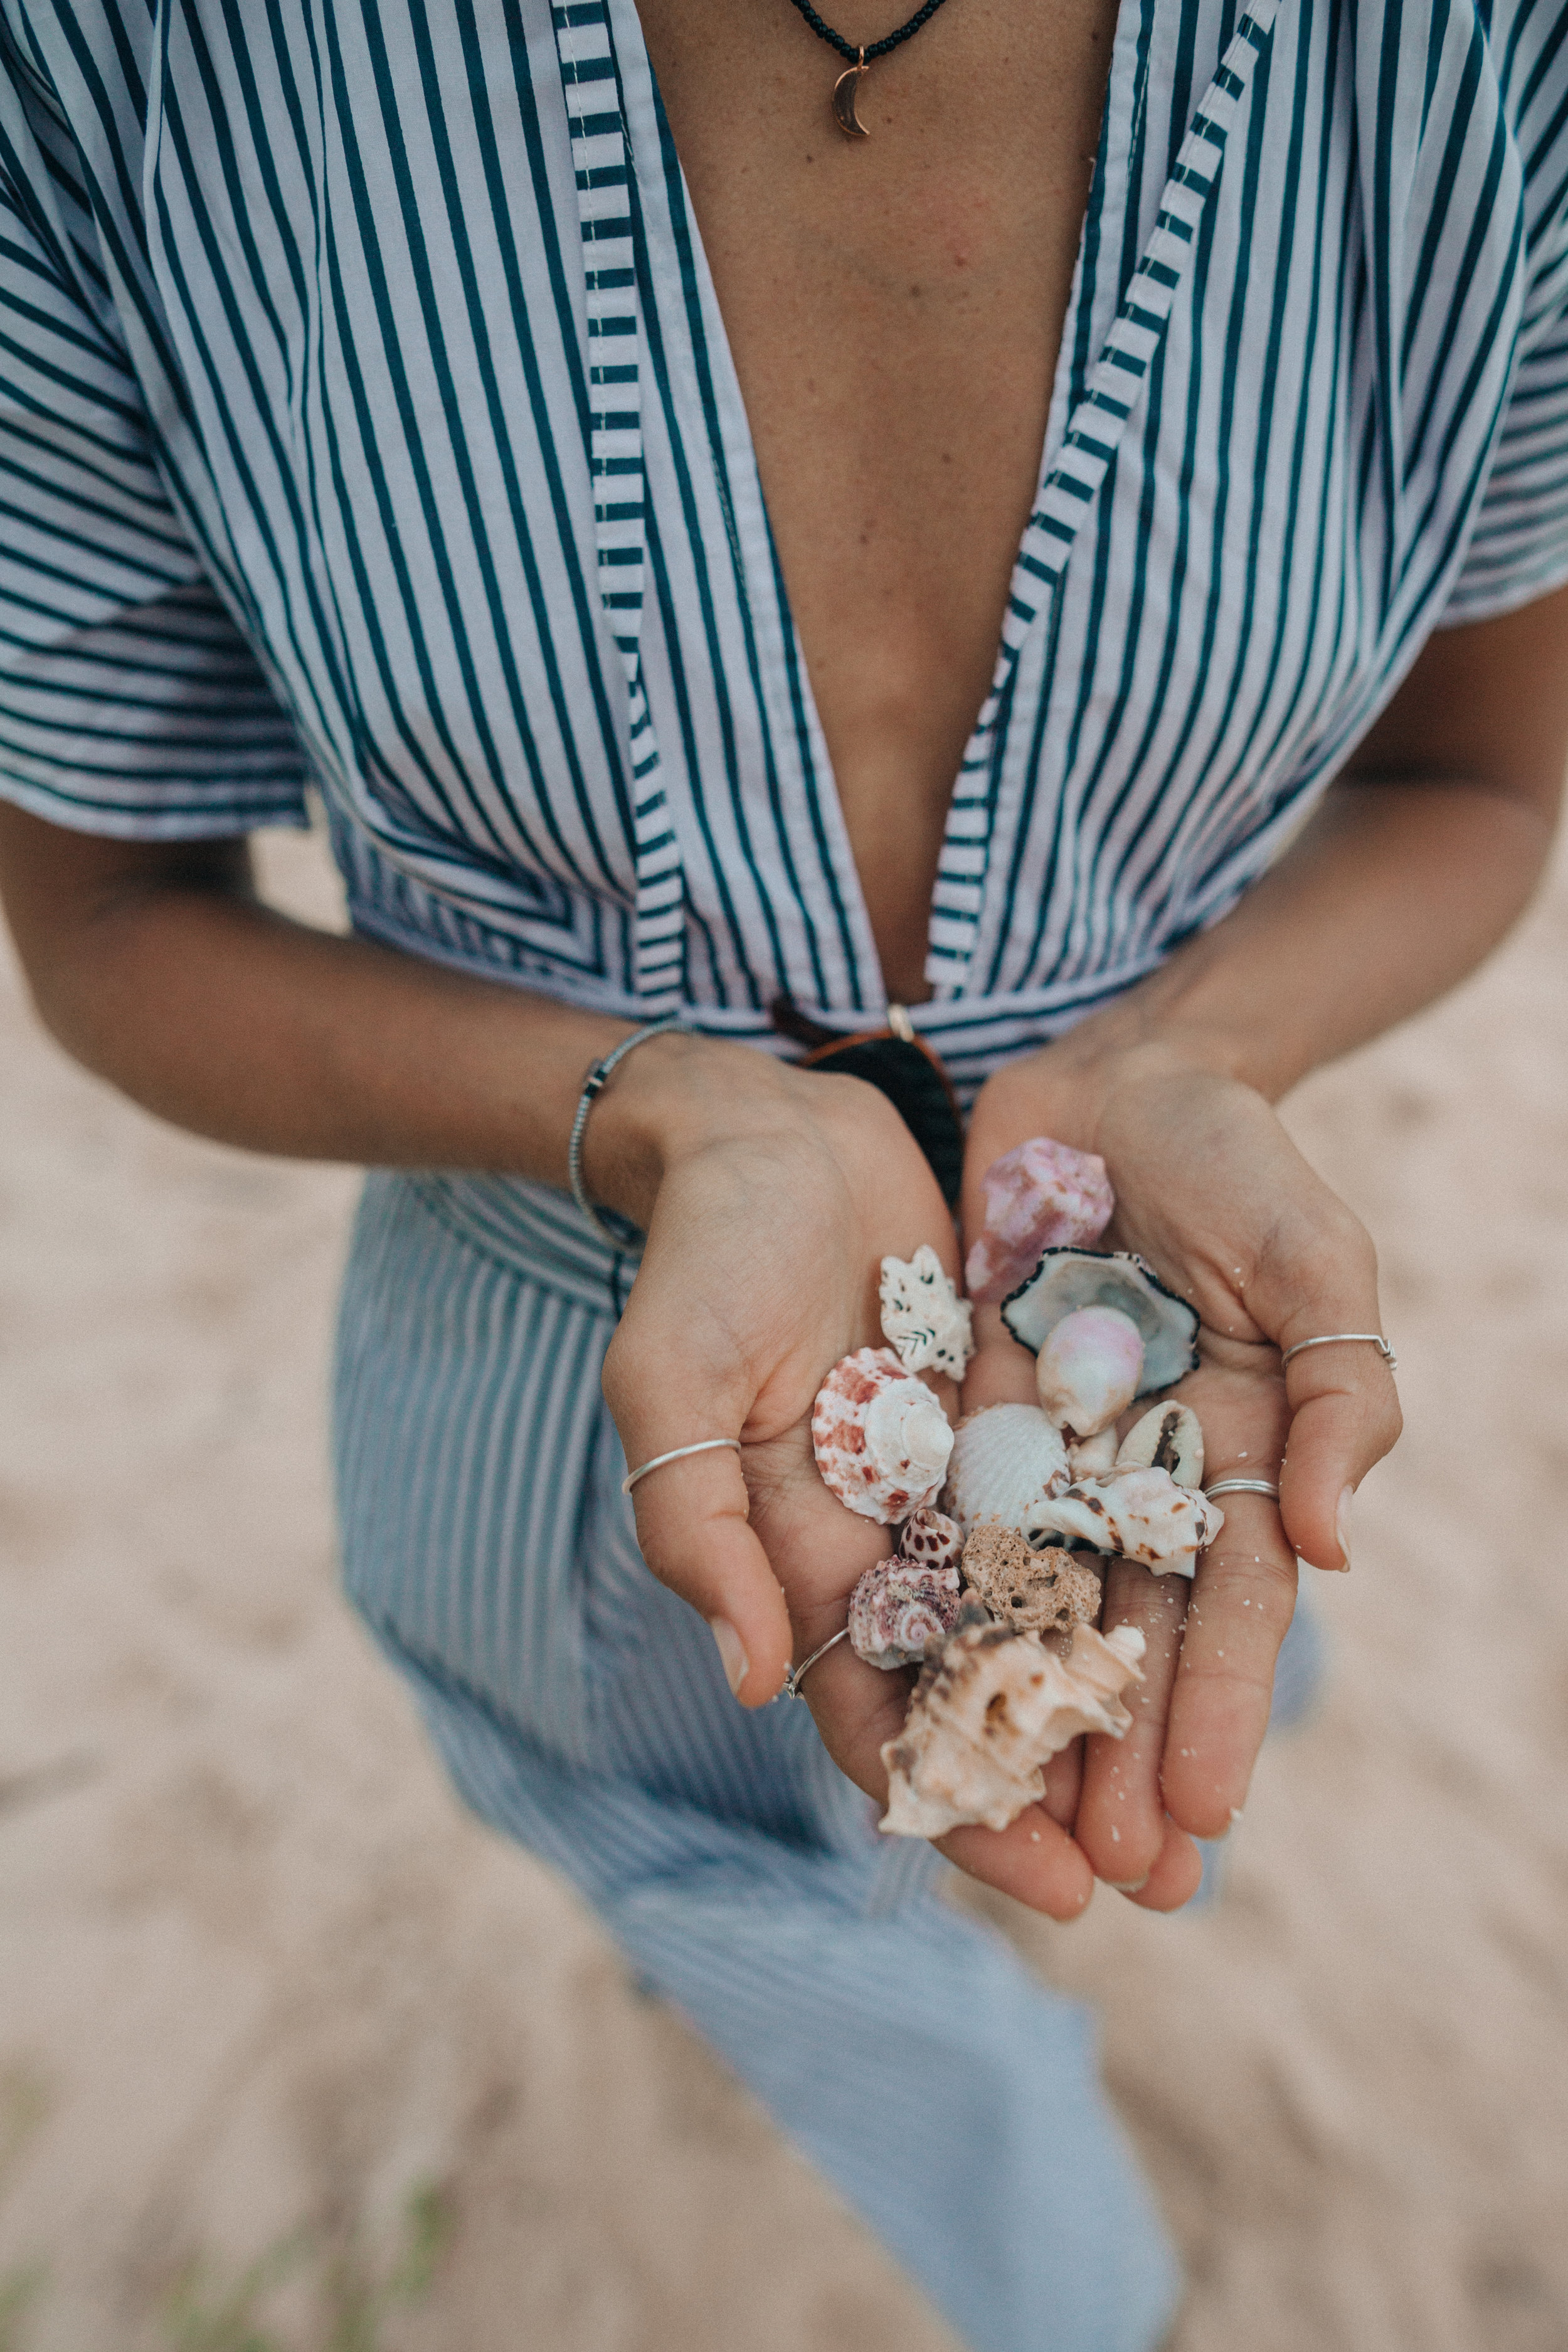 Shell collecting on the beaches of General Luna